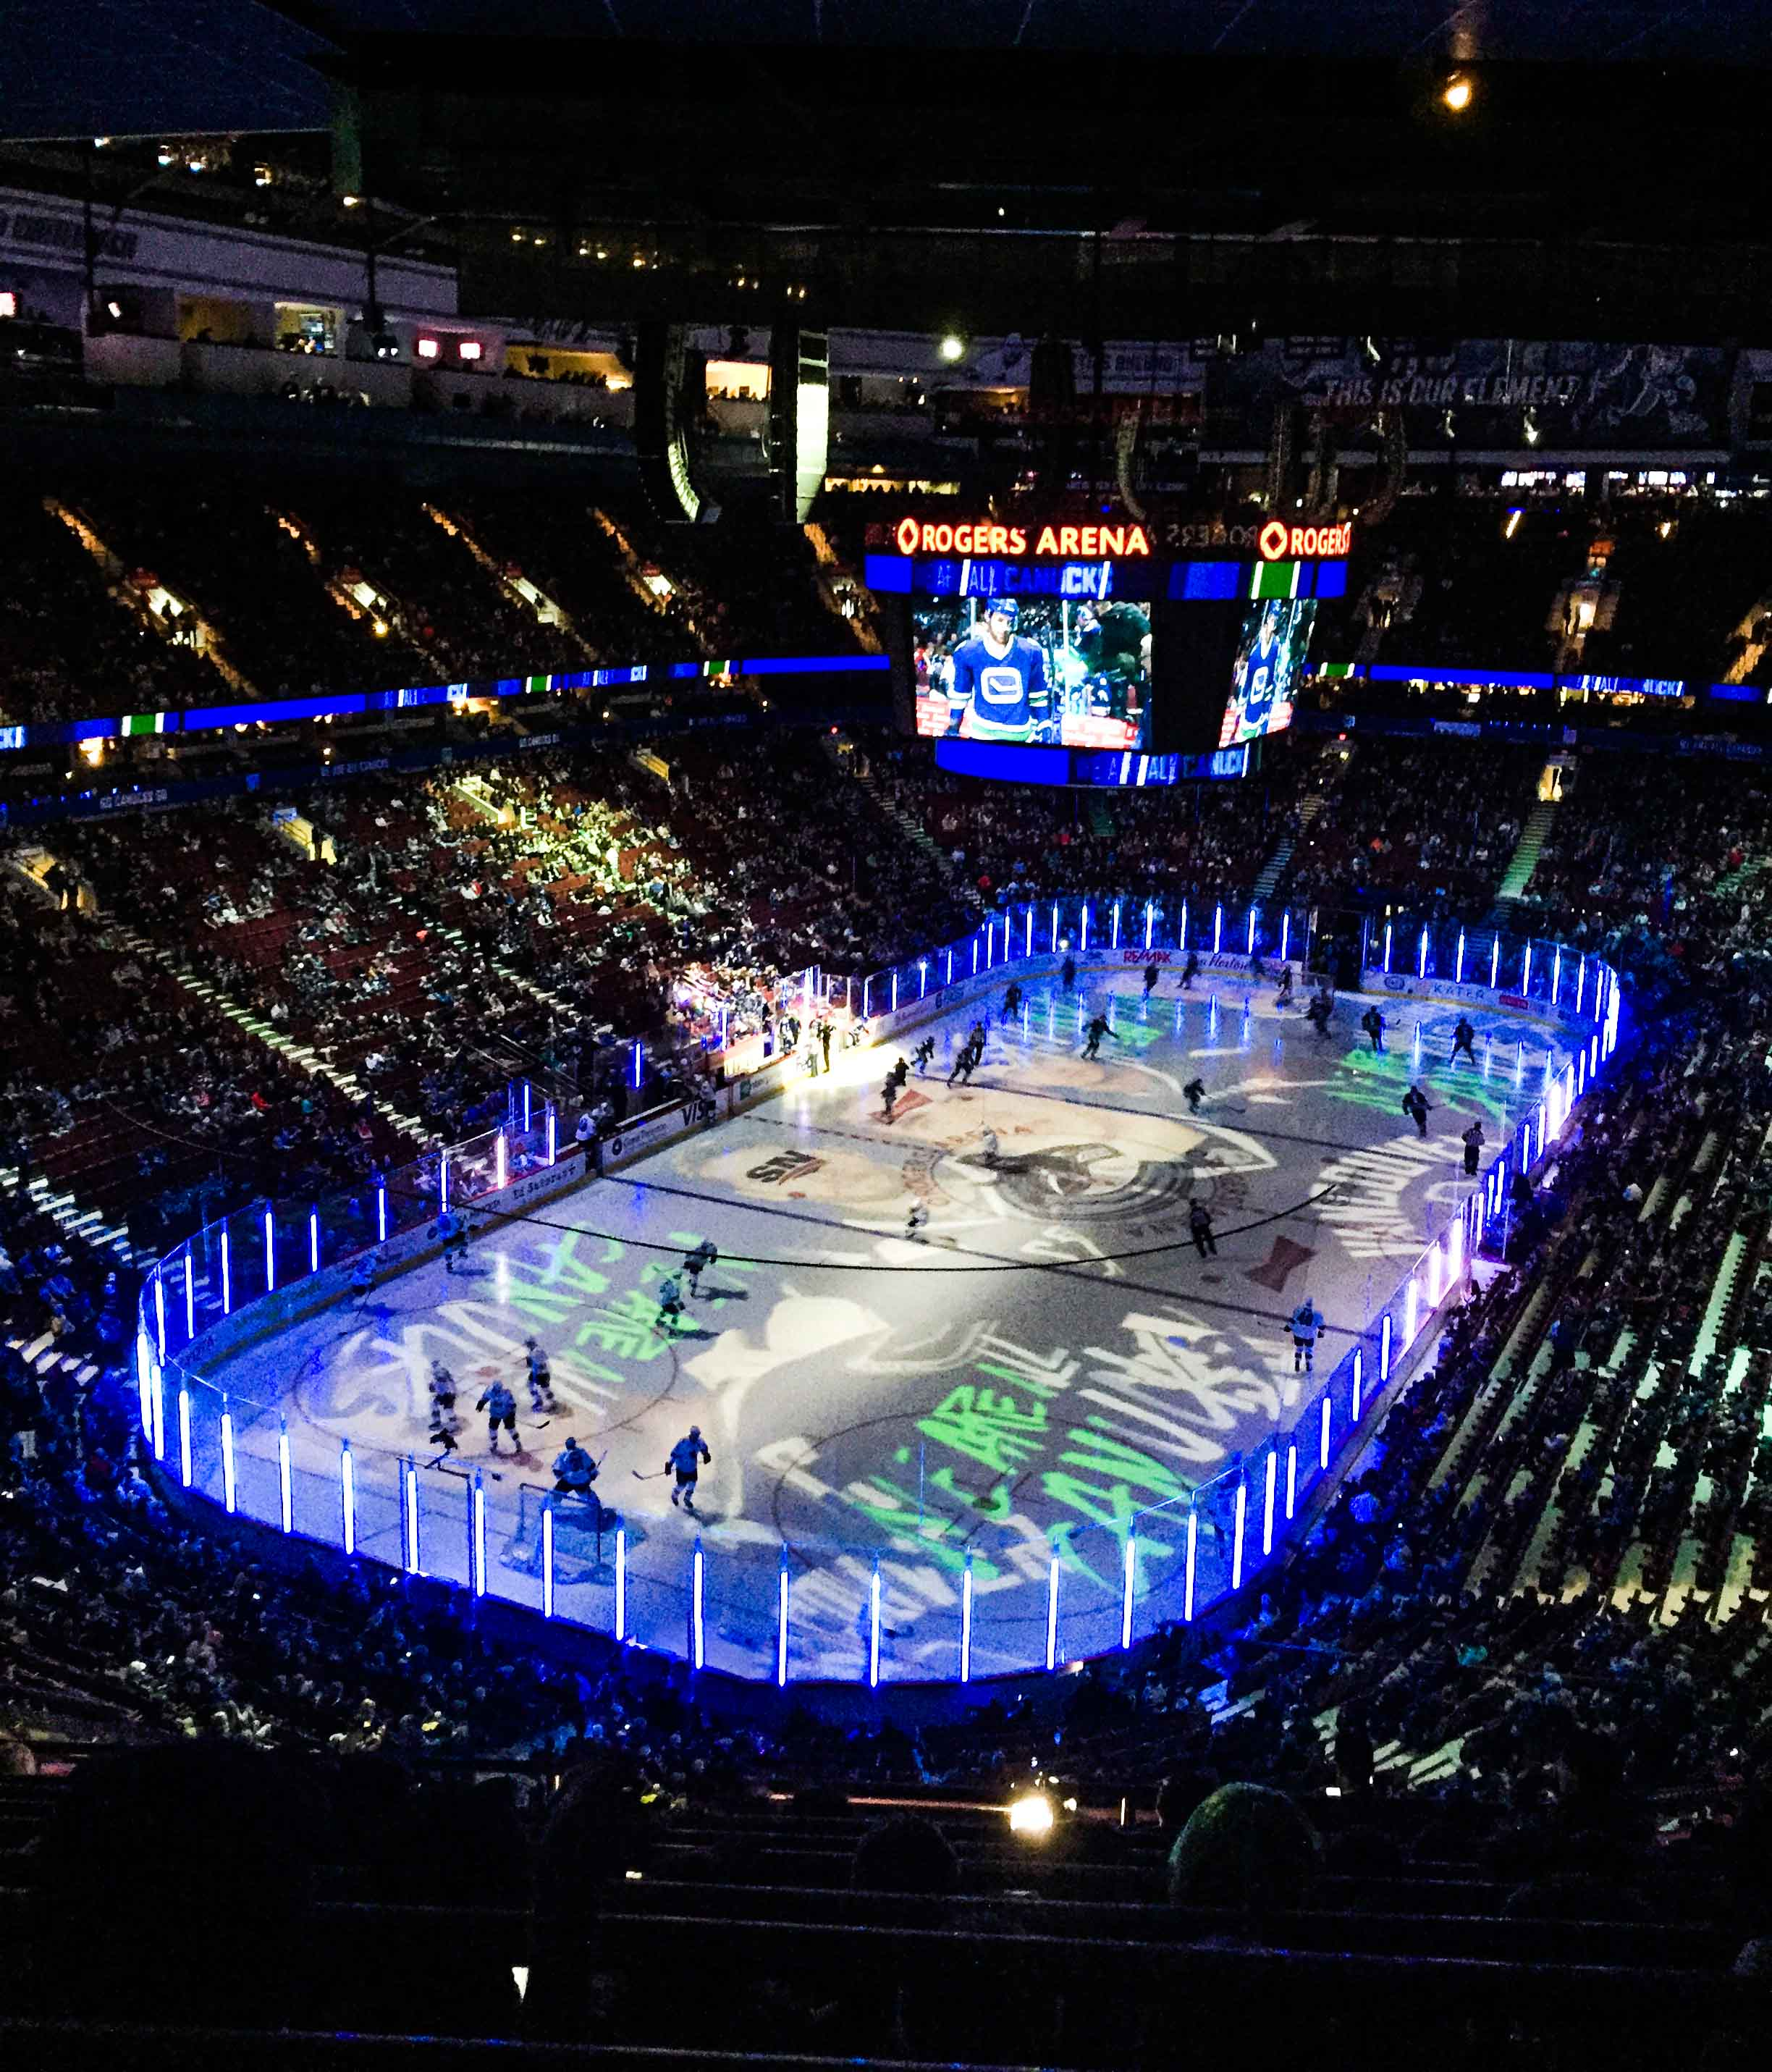 A Canucks game at Rogers Arena, Vancouver's ice hockey team.